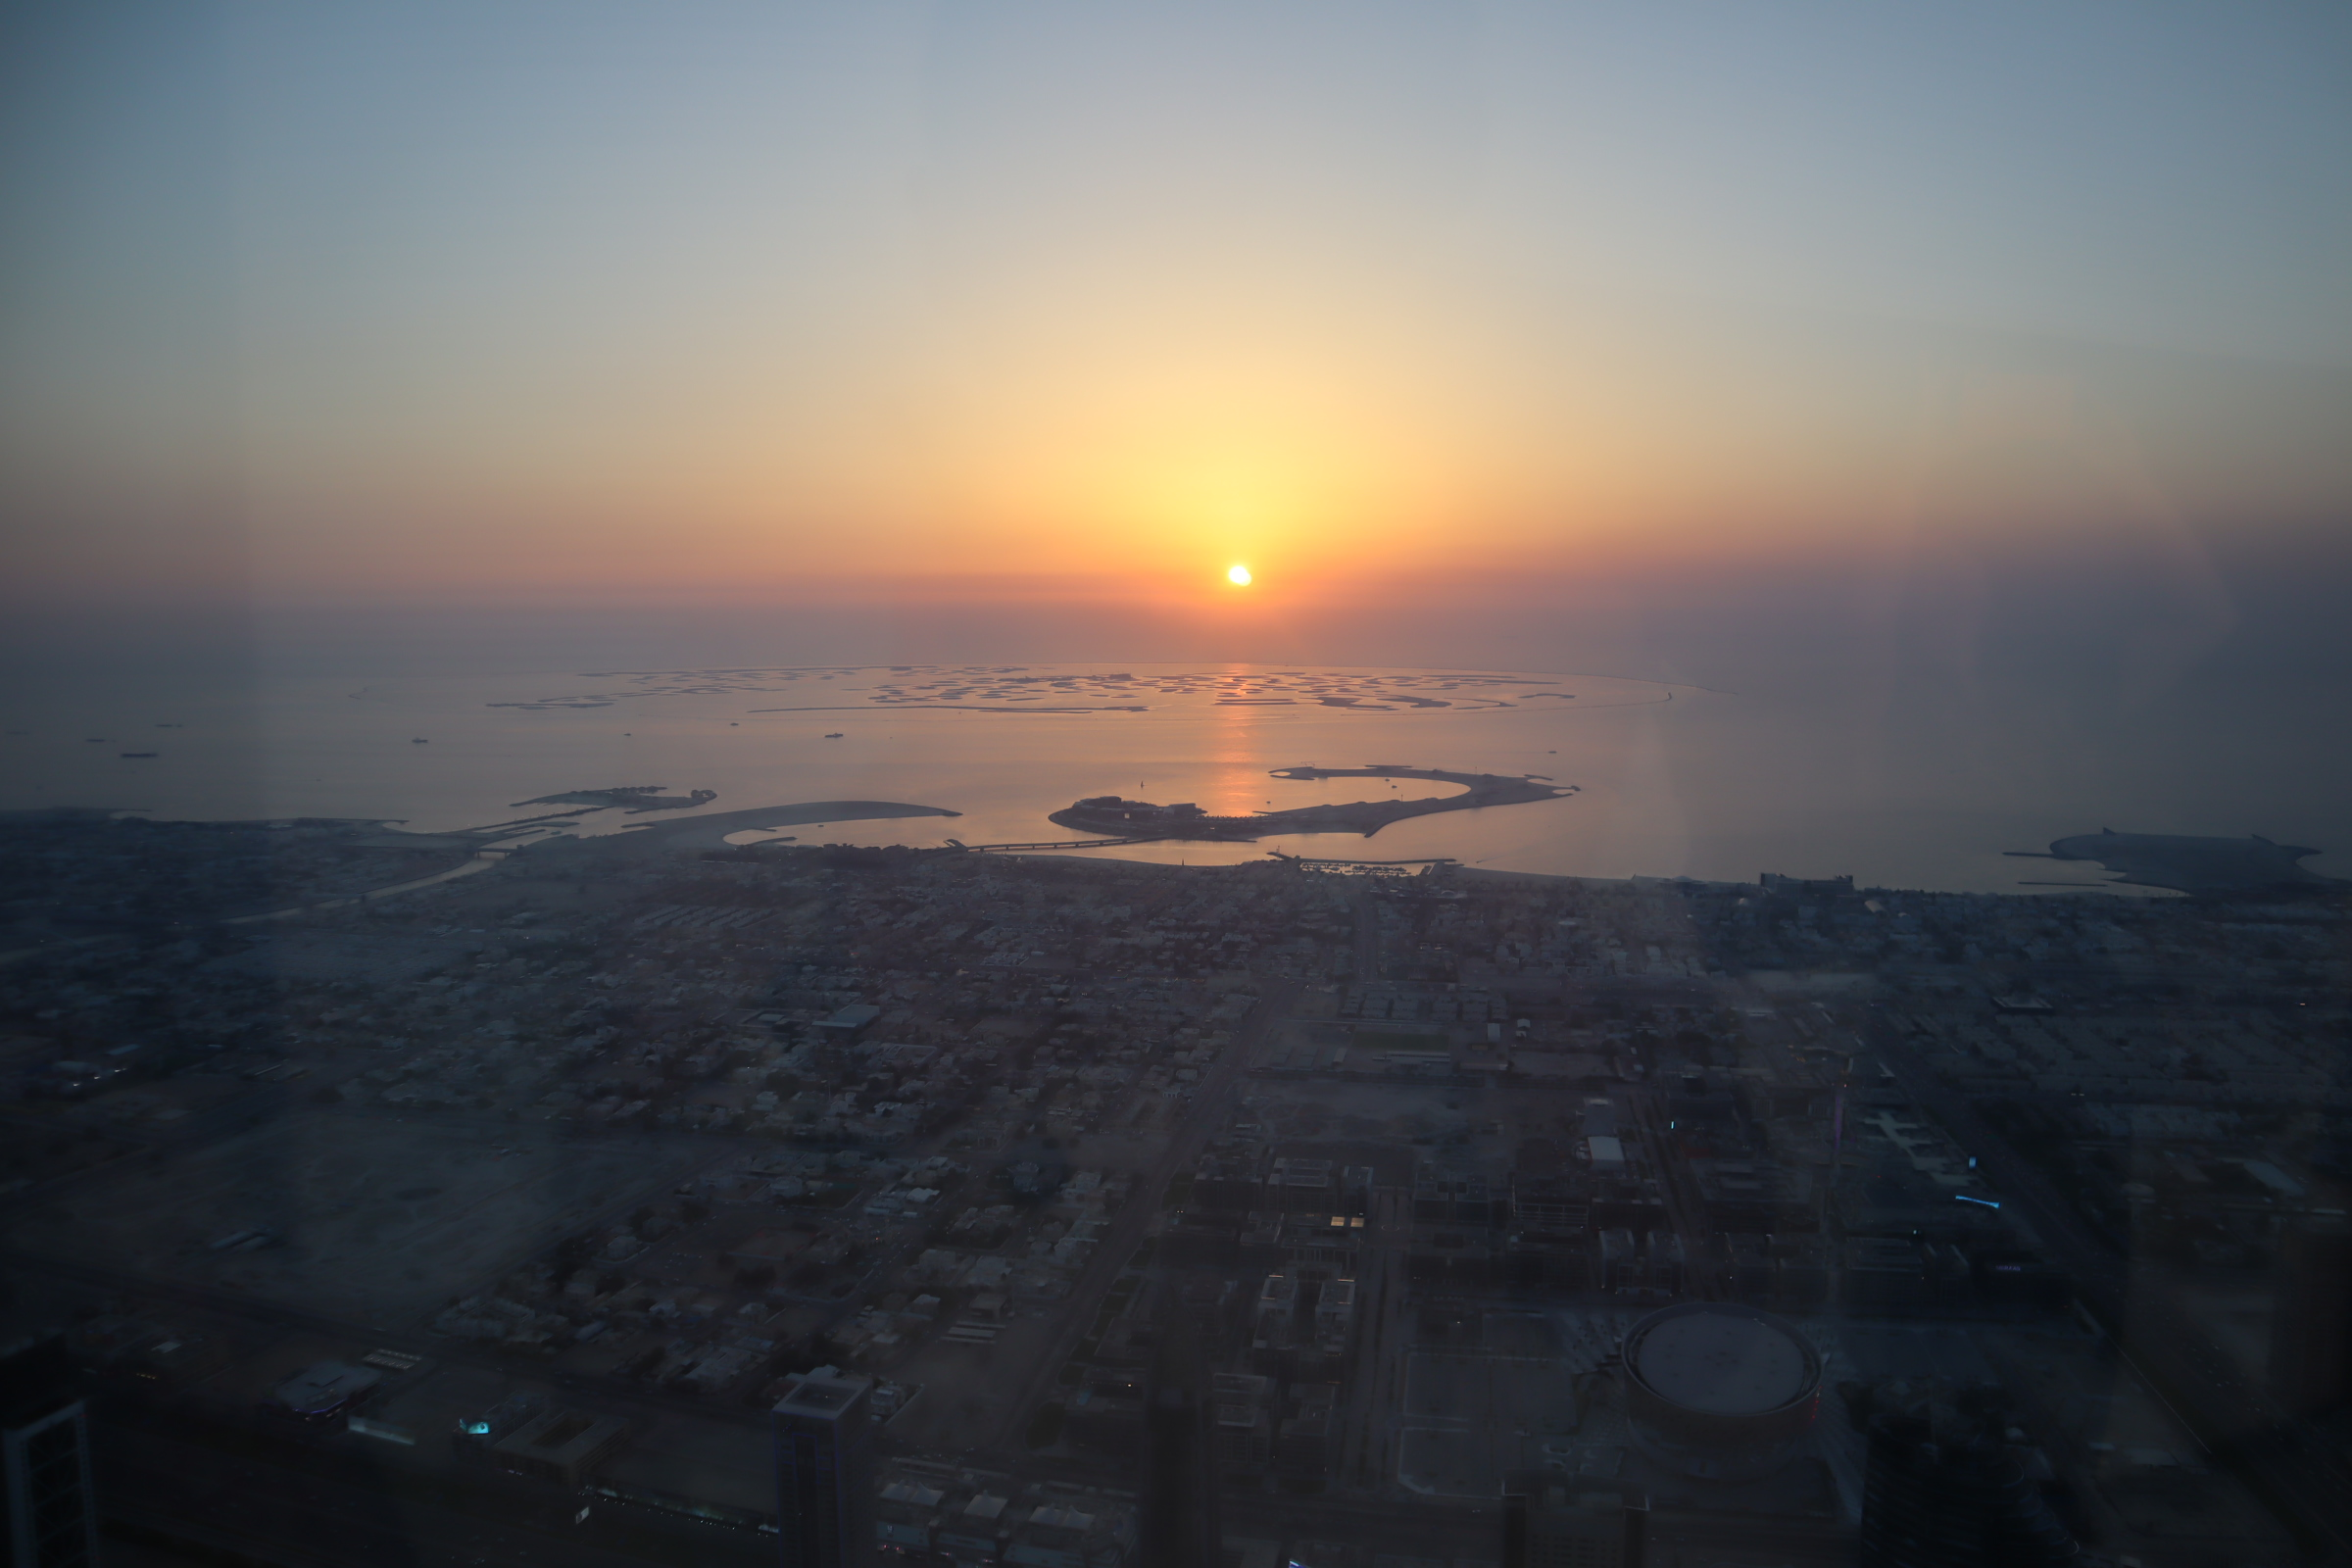 Sunset from the 148th floor